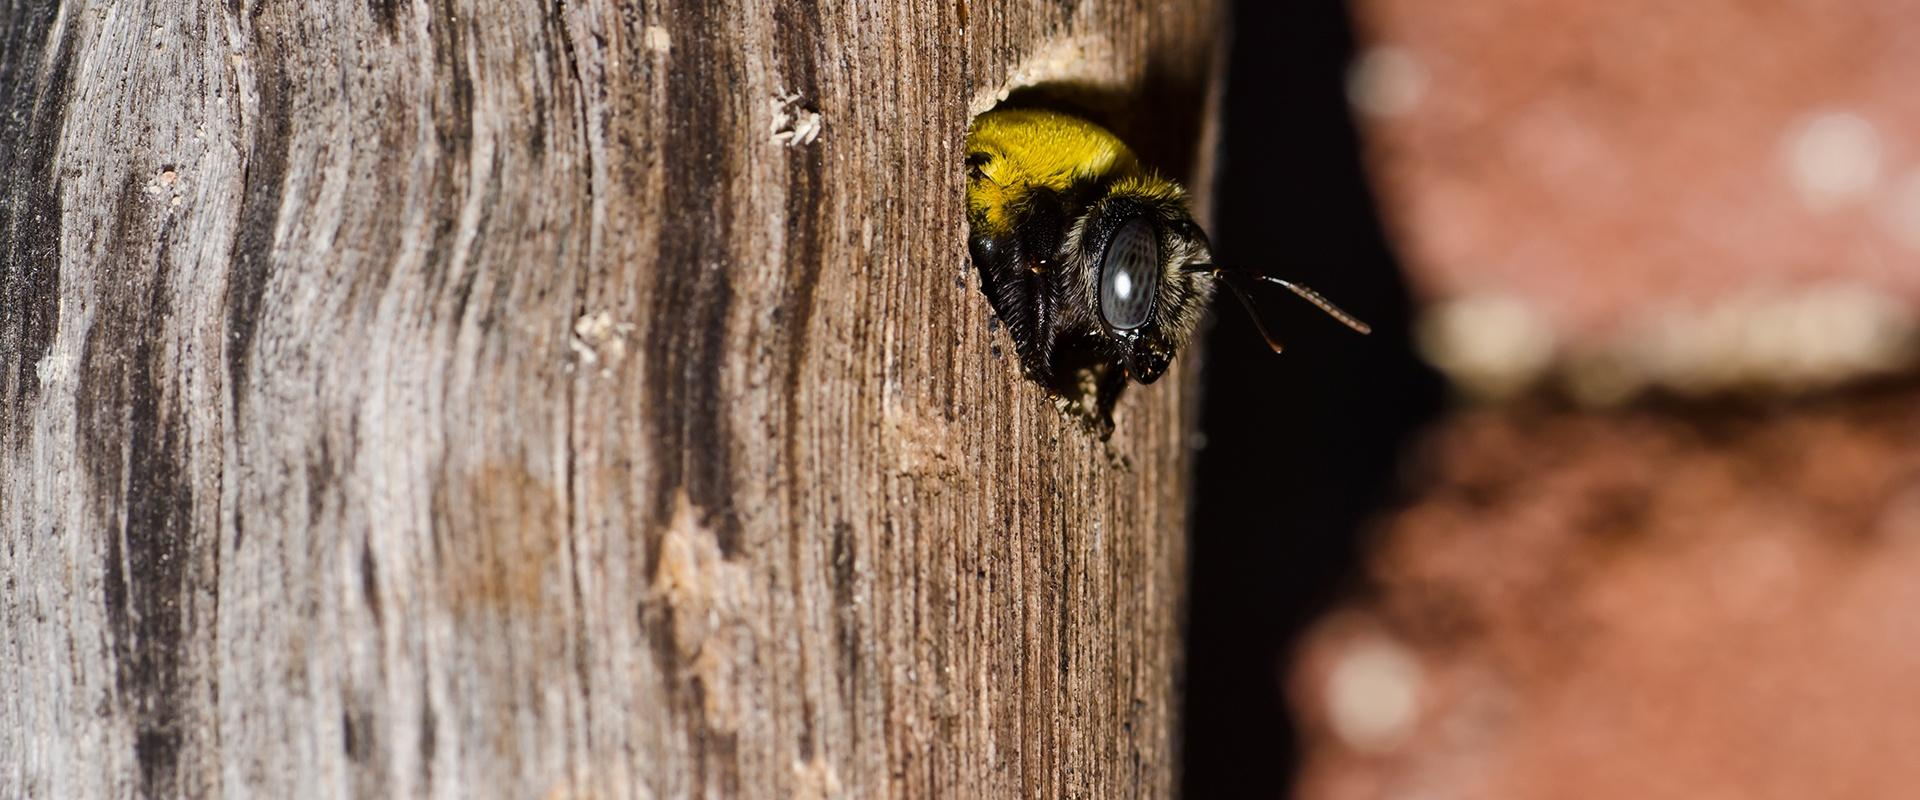 a carpenter bee on a tree